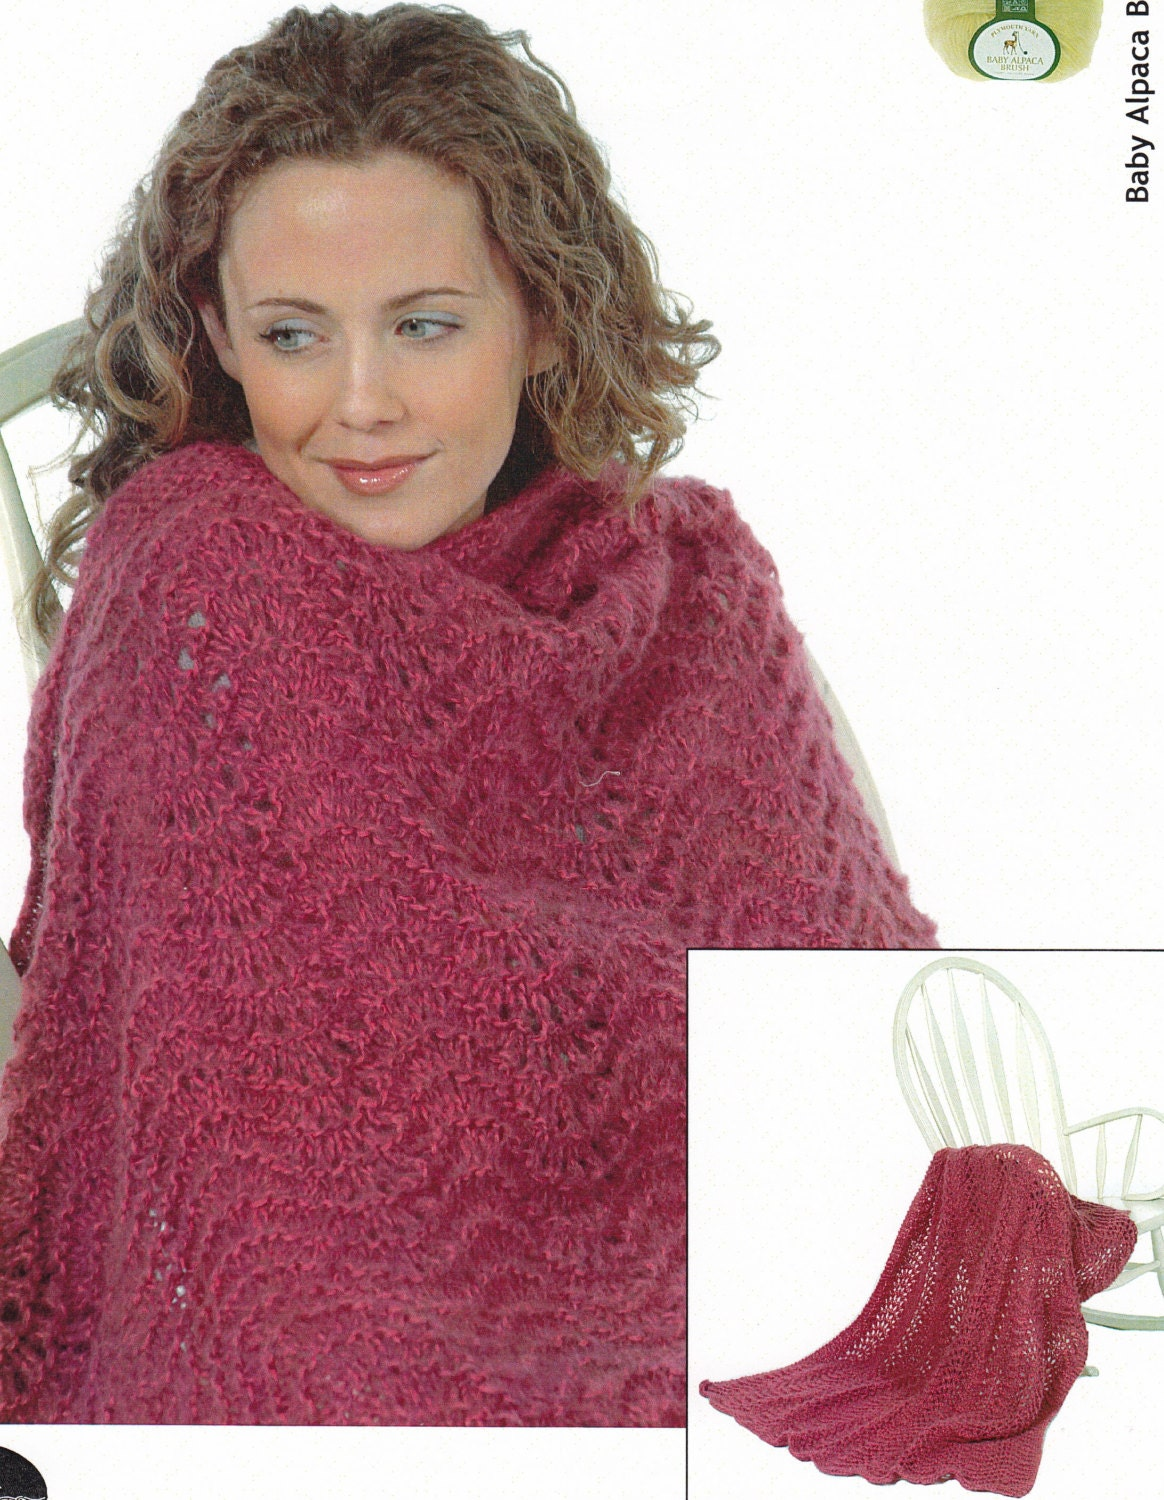 Feather and Fan Afghan Knitting Pattern - Plymouth Yarn Design ...